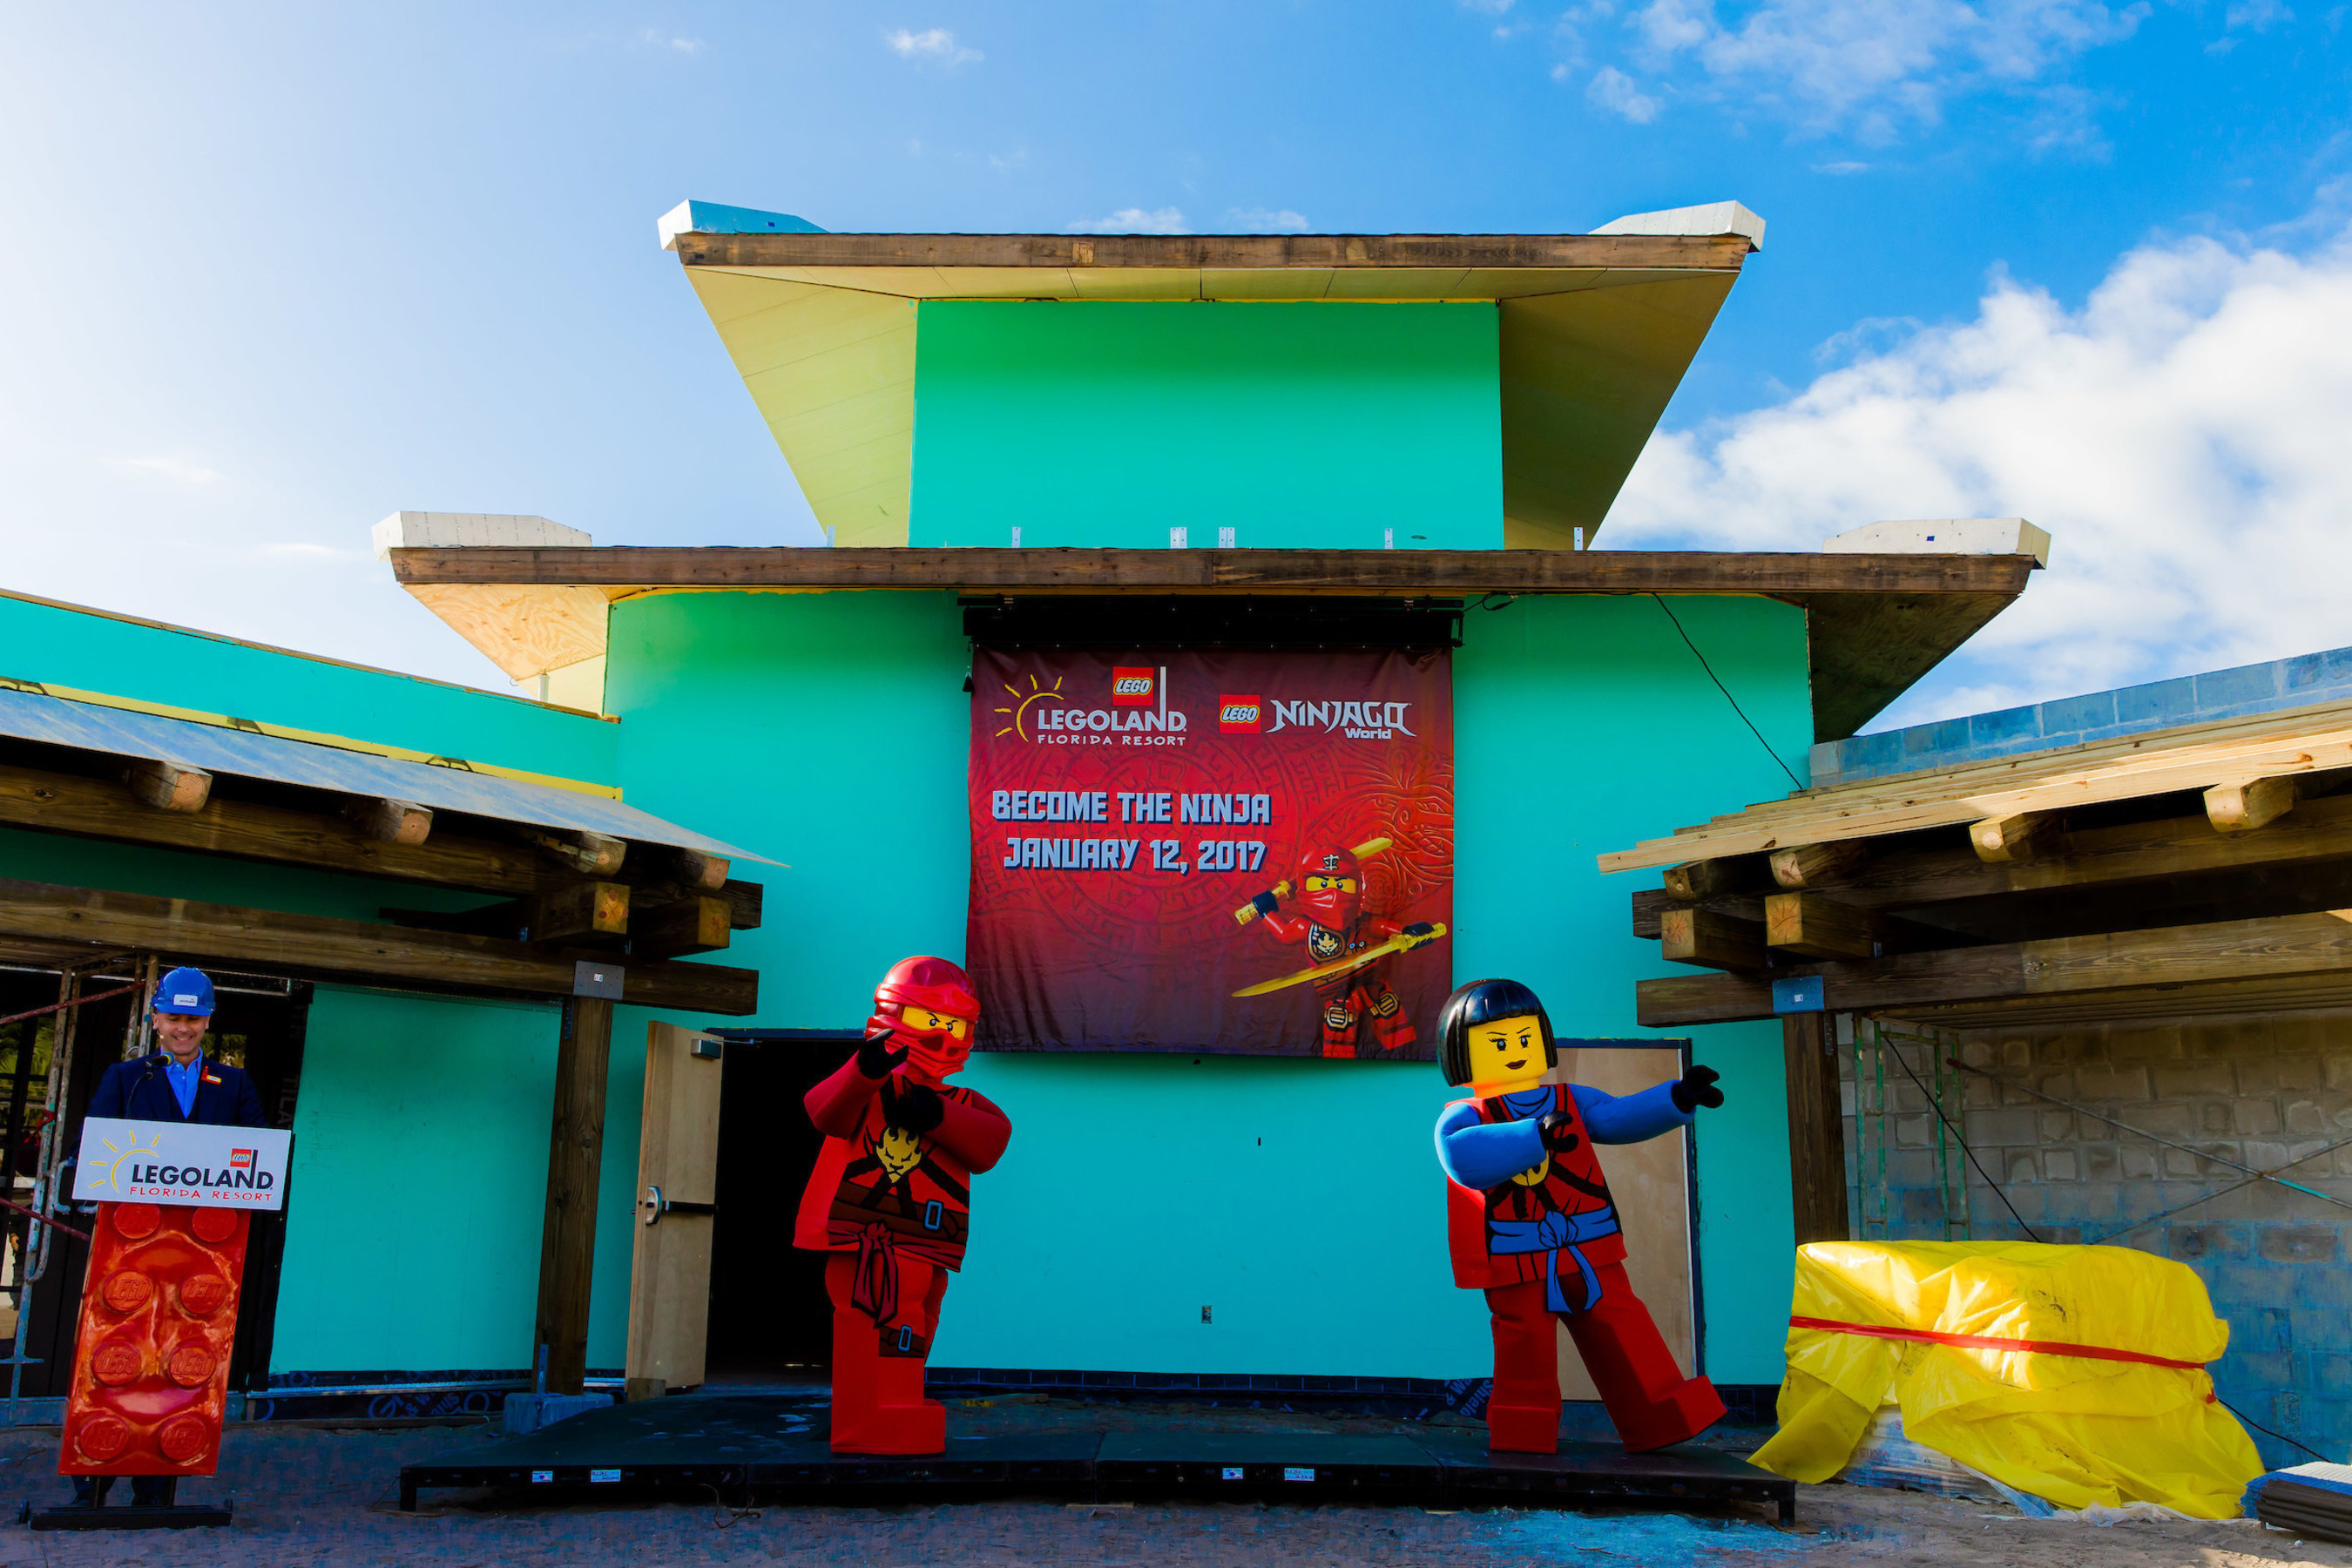 Brother-and-sister ninjas Kai, left, and Nya, helped reveal the grand opening date for LEGO NINJAGO World with Adrian Jones, general manager of LEGOLAND Florida Resort in Winter Haven, Fla.